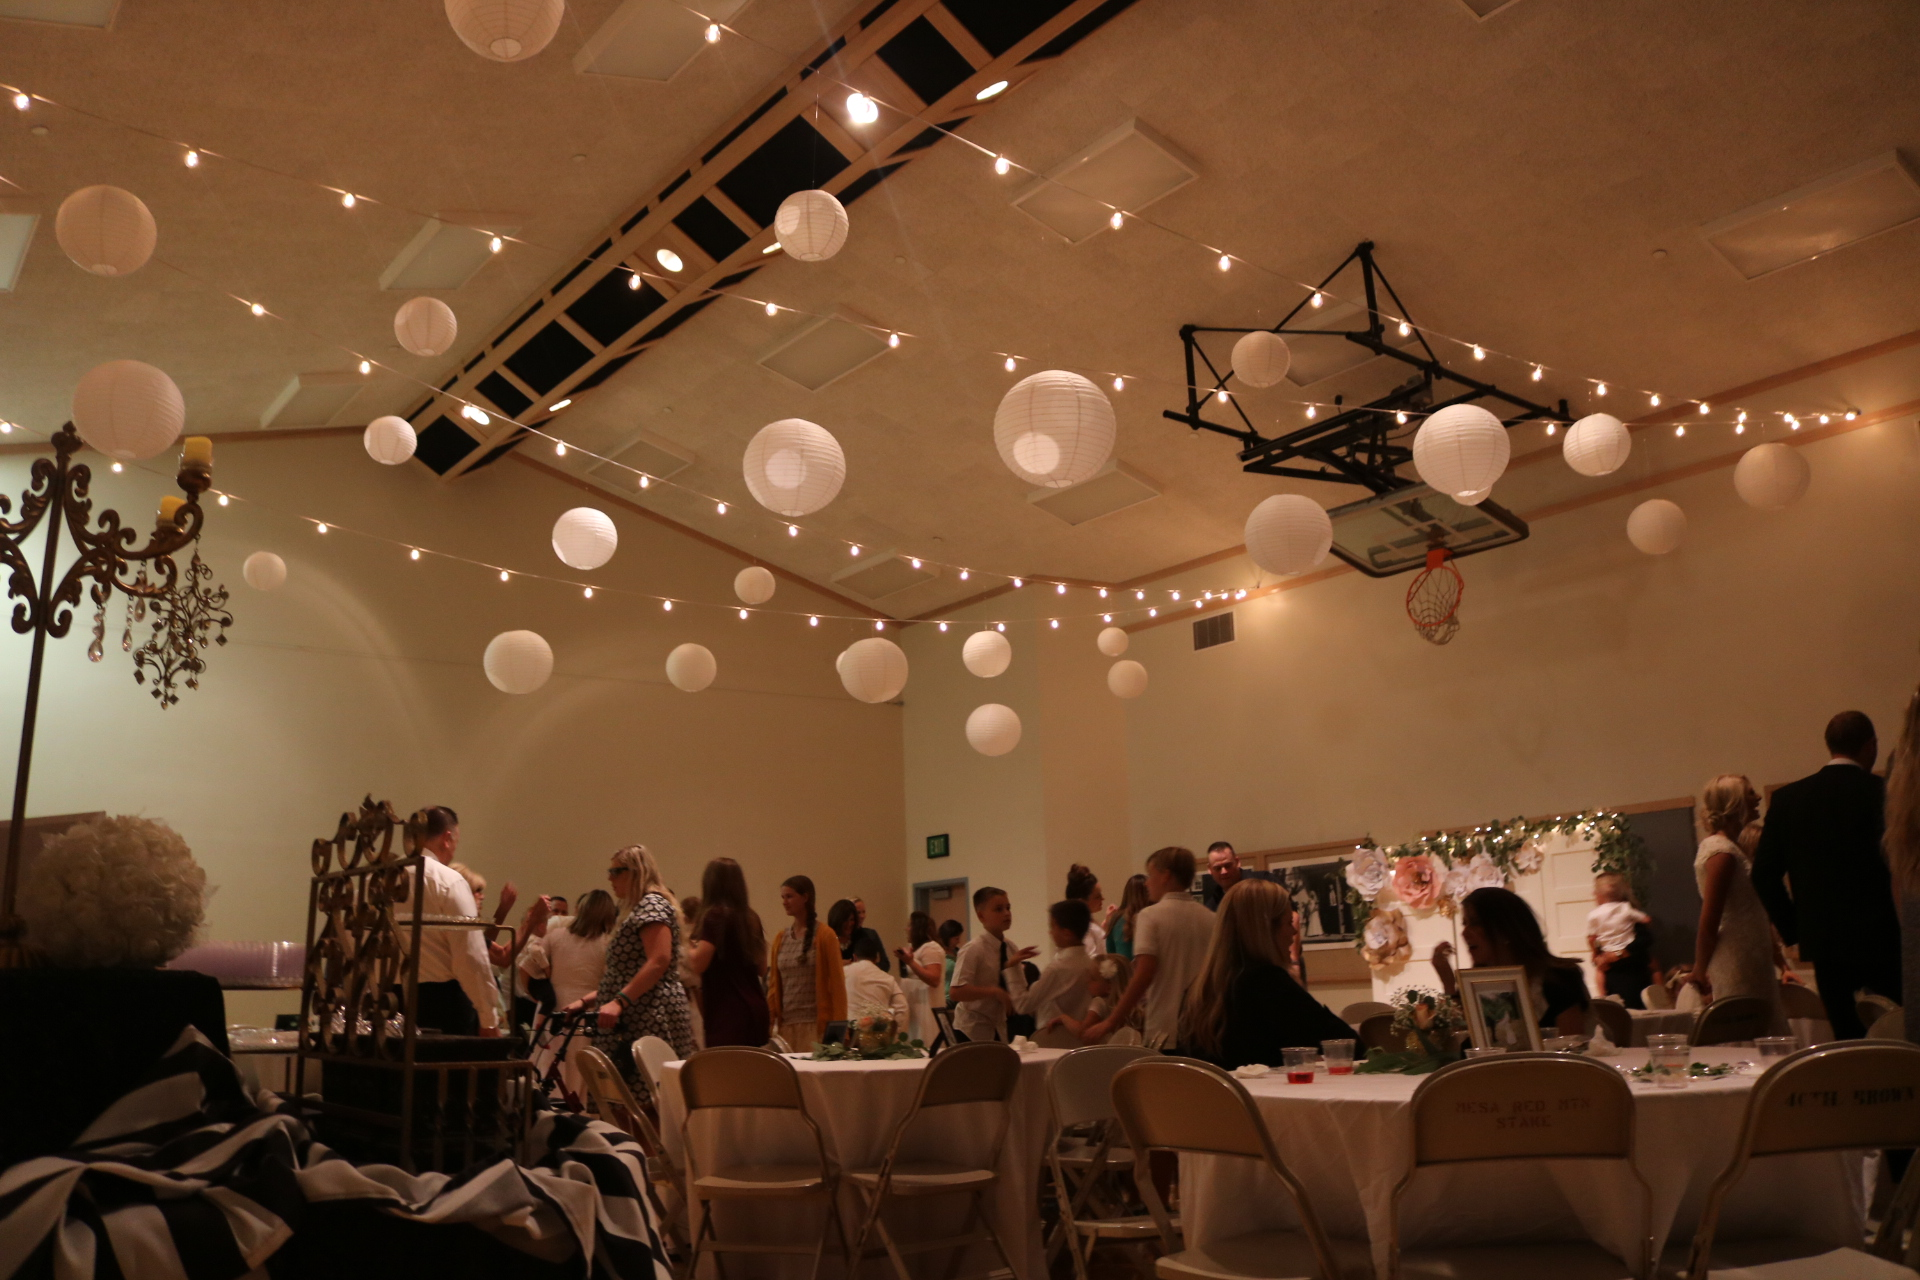 String Lighting Rentals in Arizona